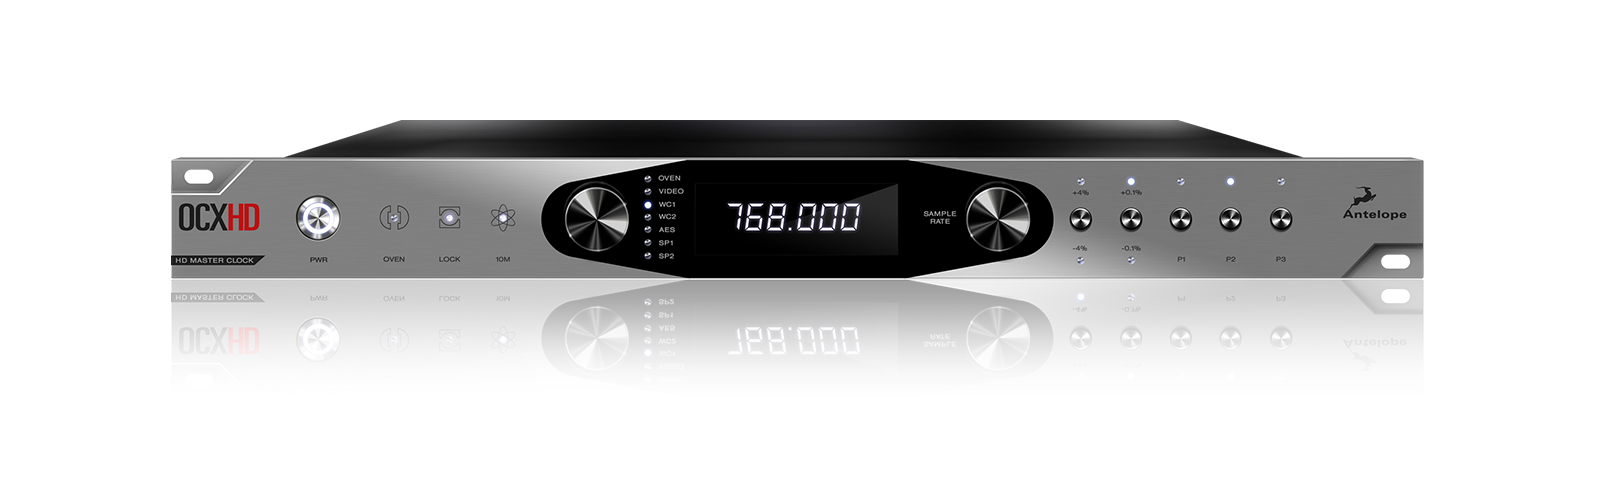 conectivity ocx hd front 1